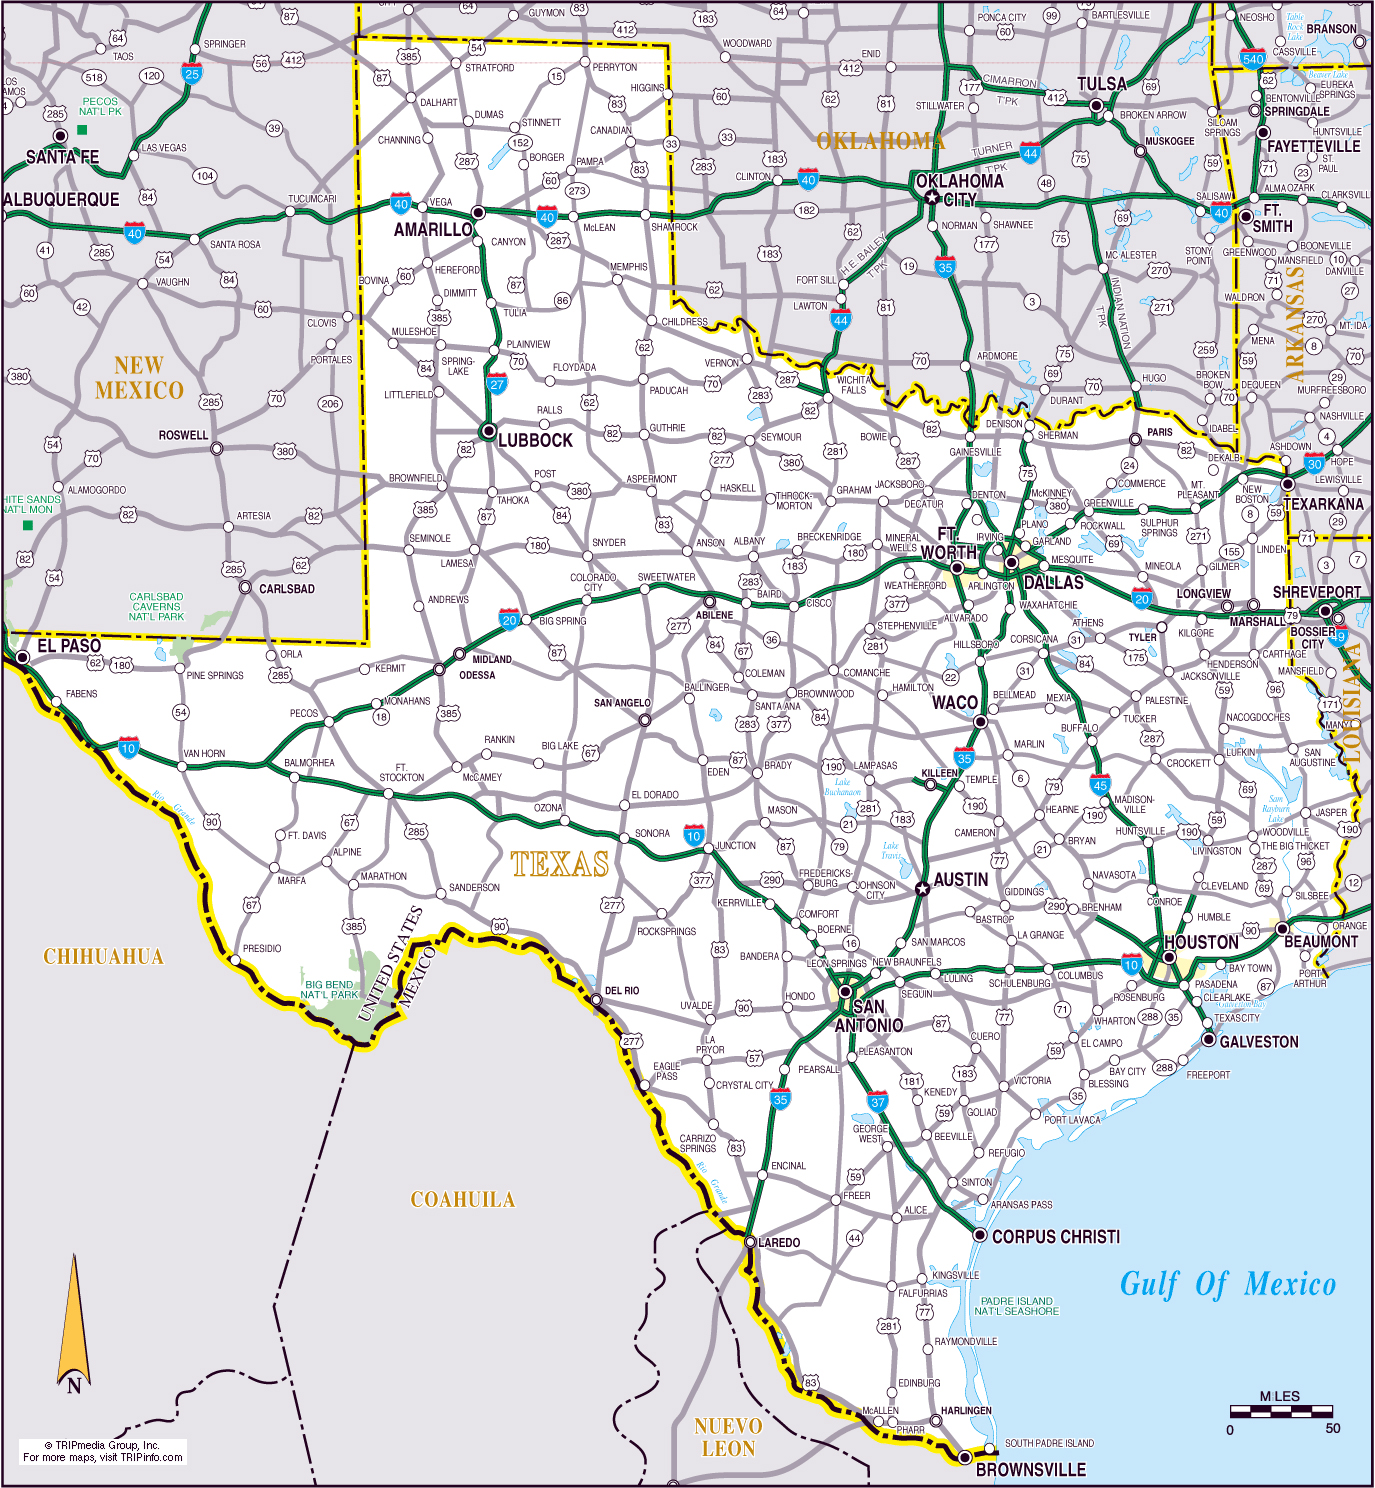 Road Map Of Texas State.Large Roads And Highways Map Of The State Of Texas Vidiani Com